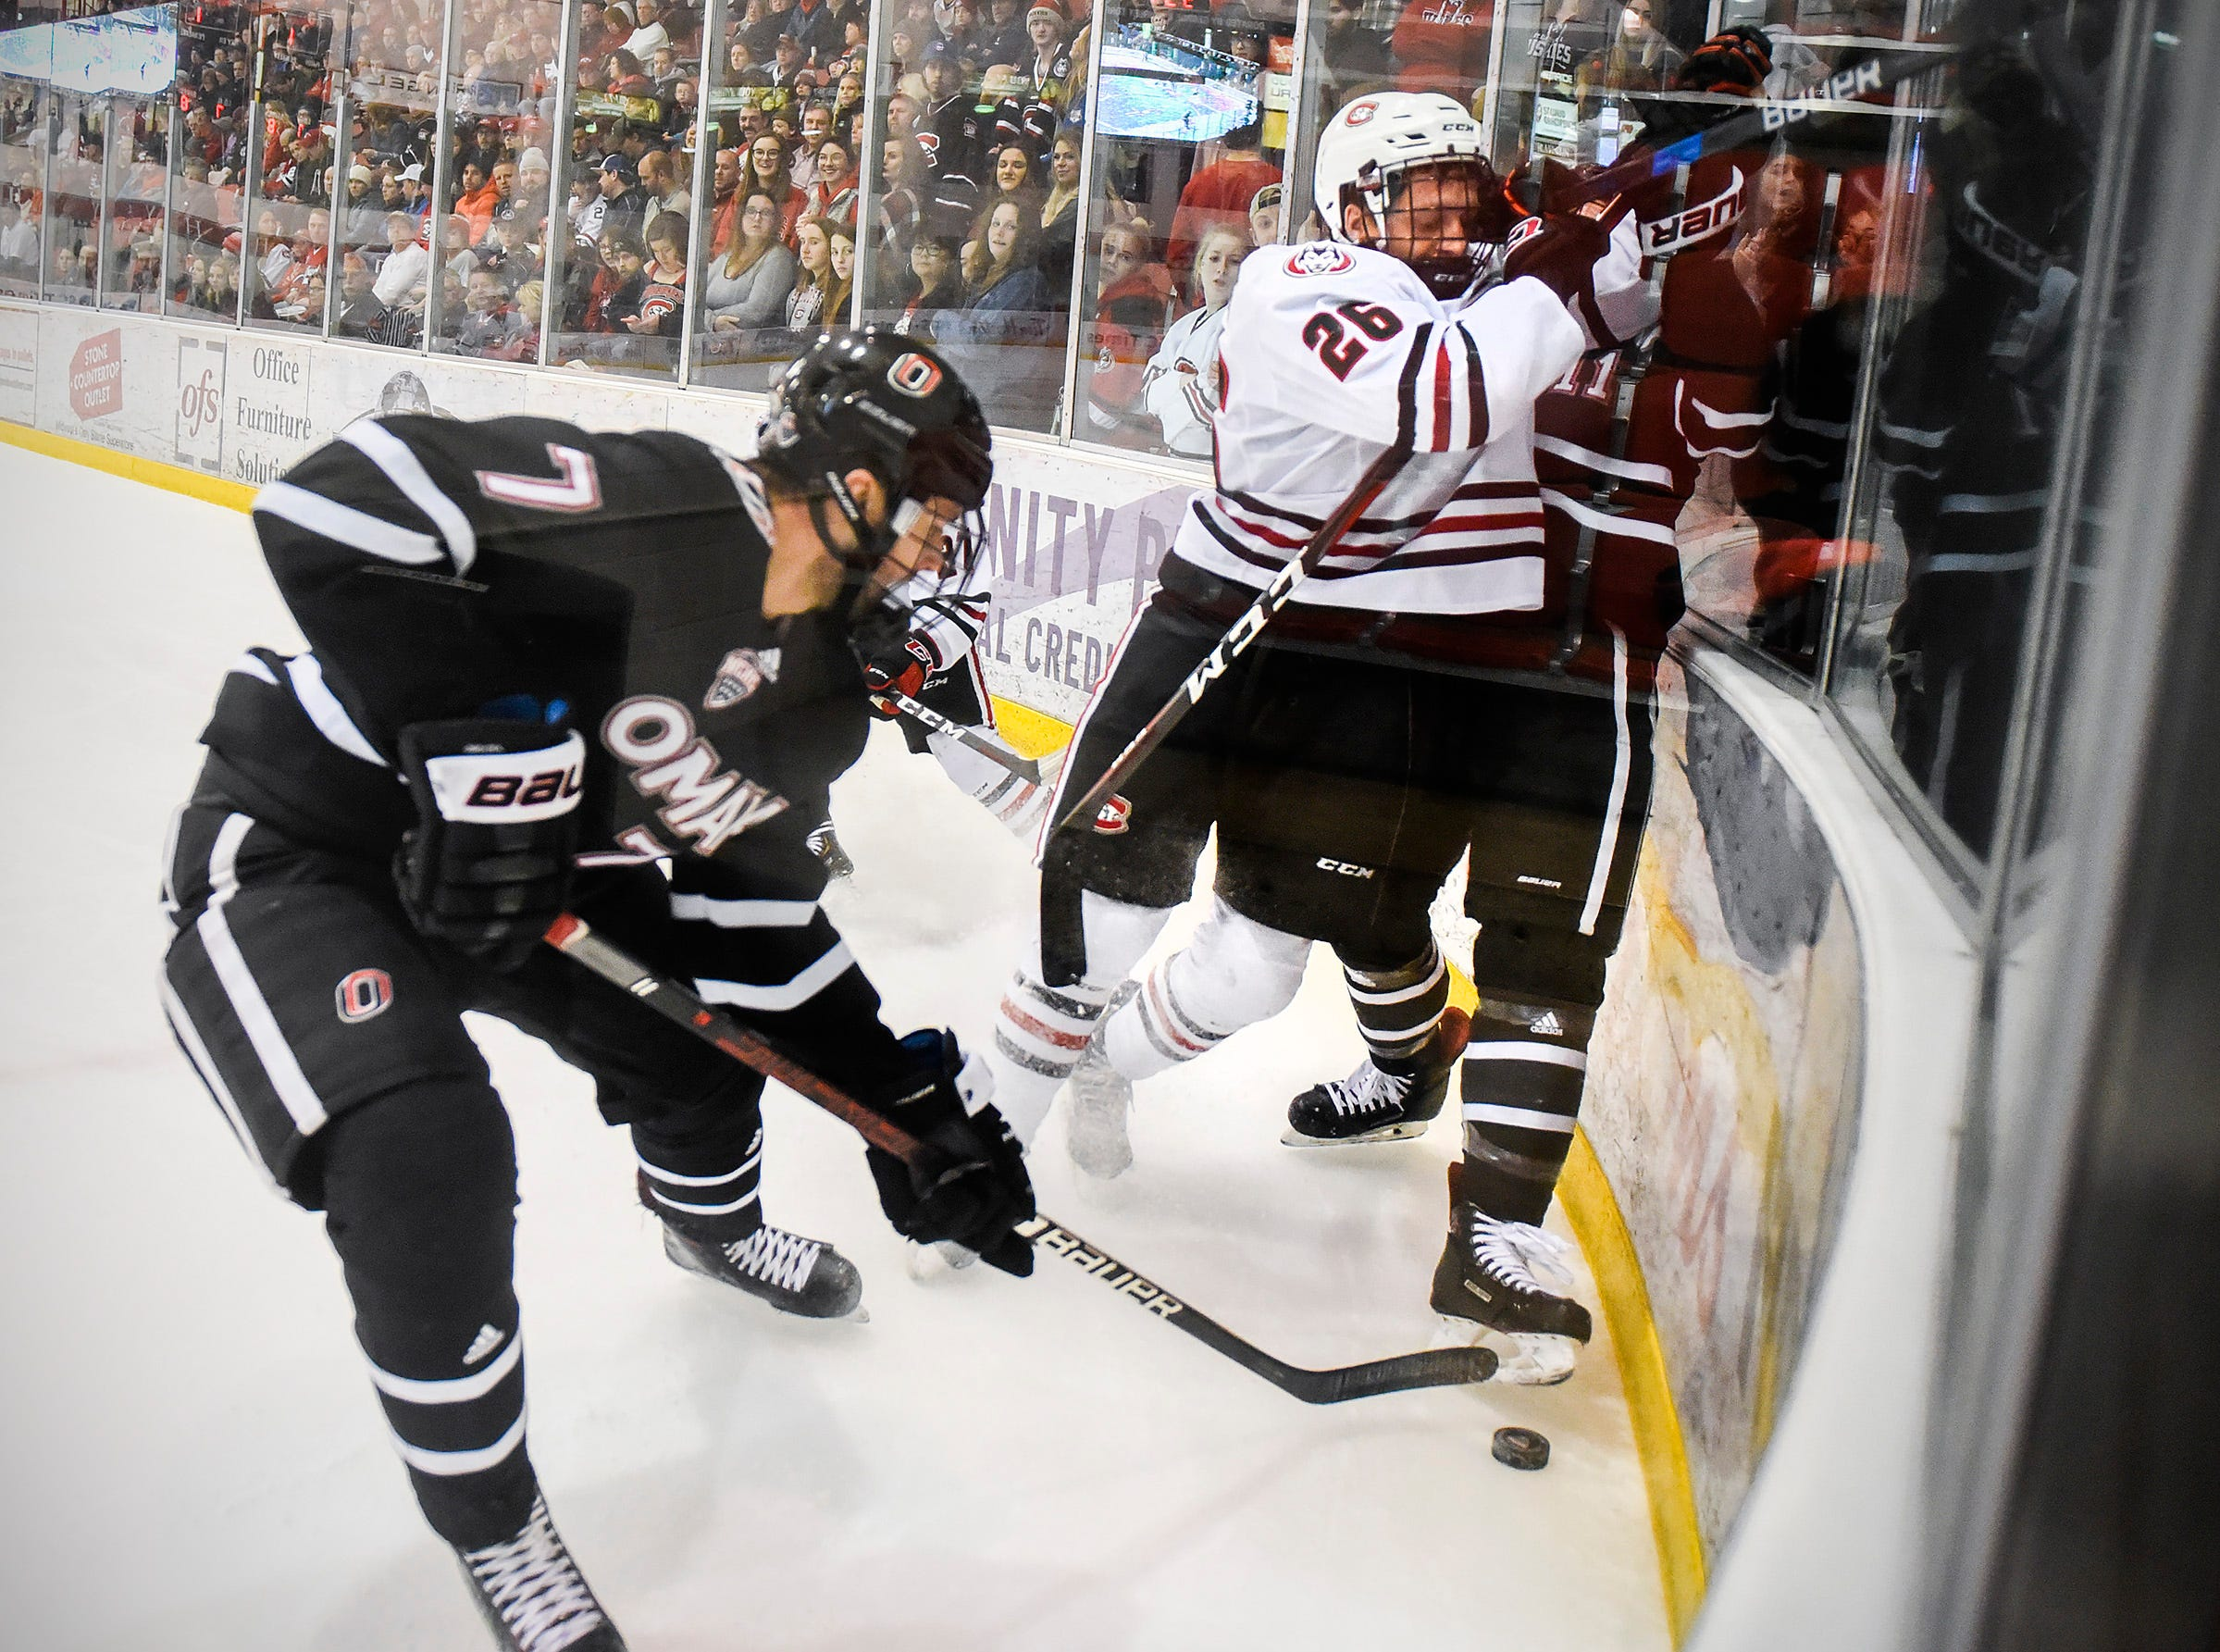 St. Cloud State's Easton Brodzinski battles Nebraska-Omaha's Nate Knoepke, left, and Mason Morelli against the boards for the puck during the first period Saturday, Dec. 8, at the Herb Brooks National Hockey Center.